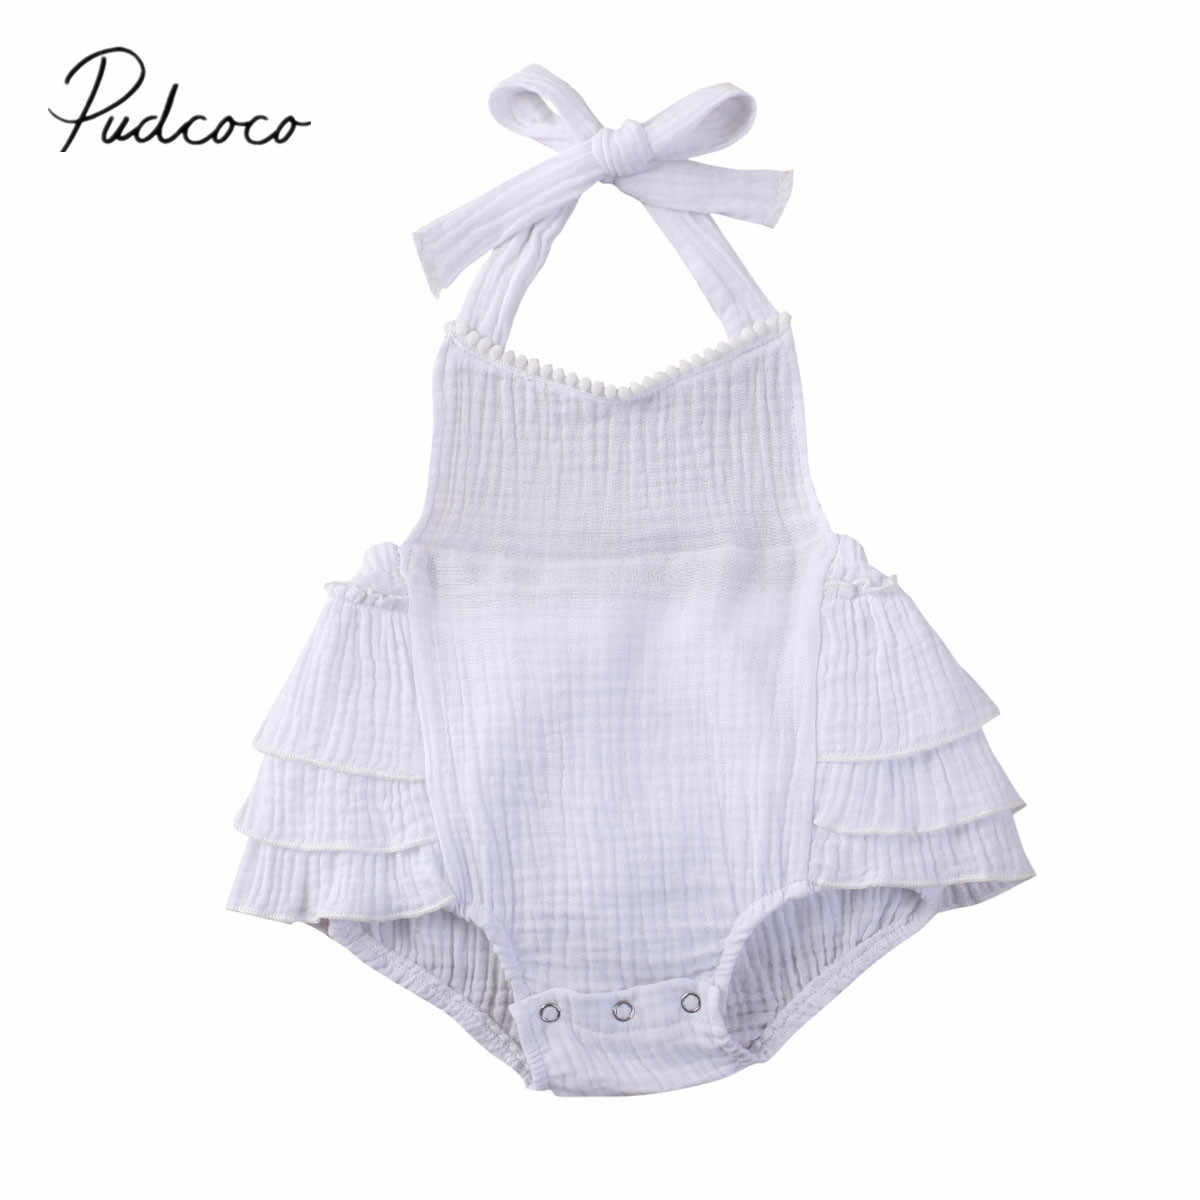 2020 Baby Summer Clothing Newborn Baby Girl Lace-up Ruffle Backless Sunsuit Bodysuit Solid White Jumpsuit Strap Outfit